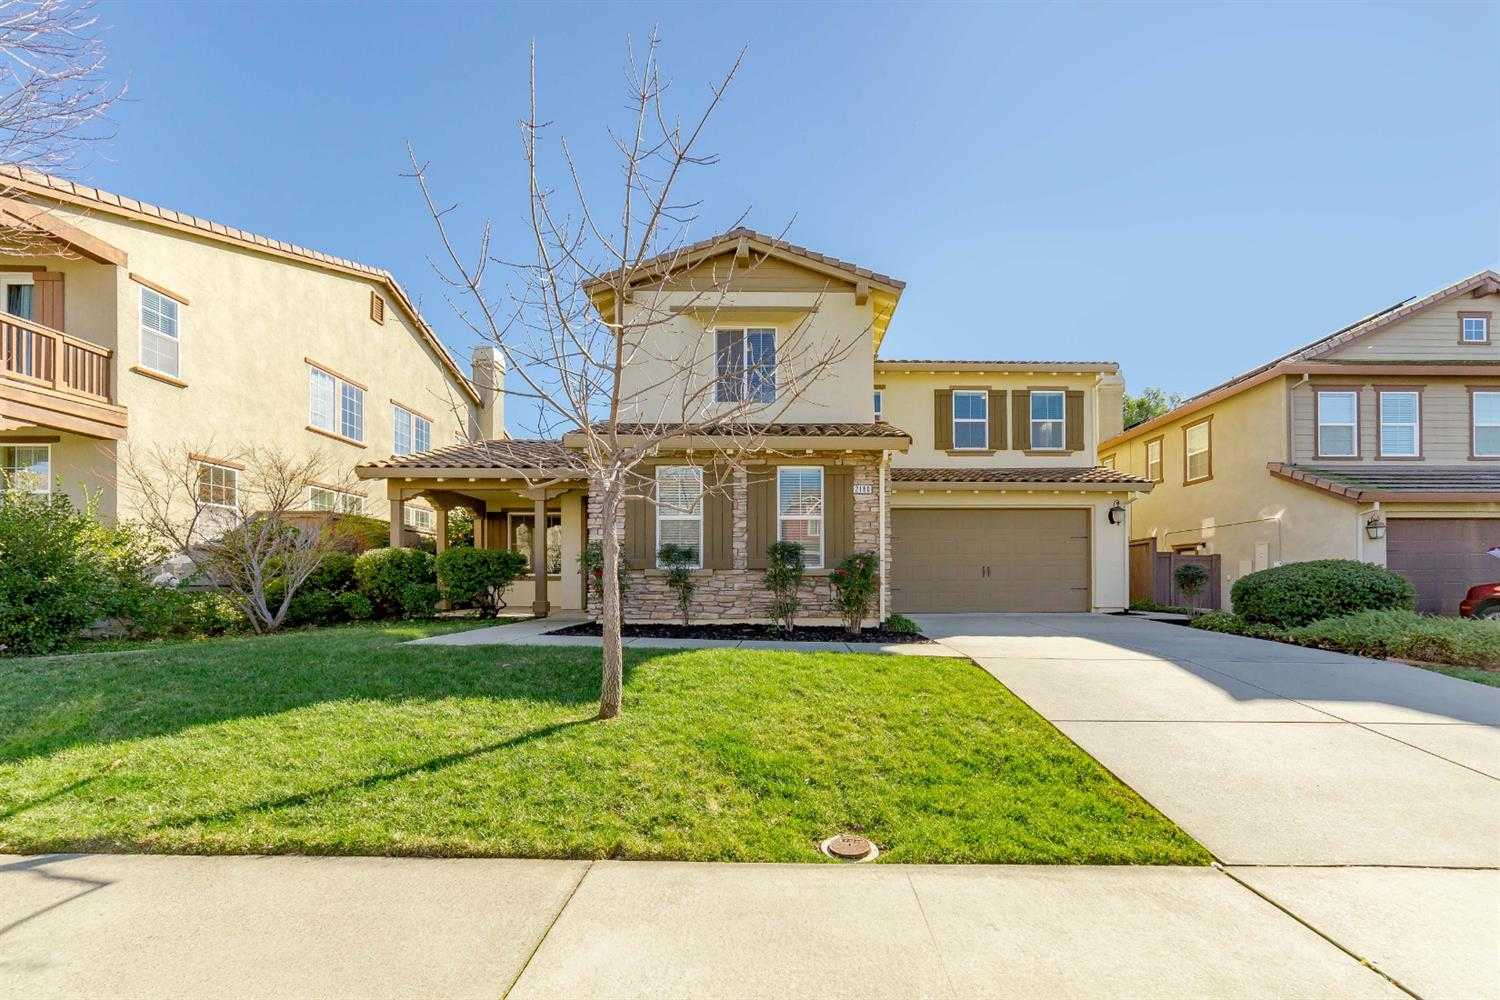 $664,999 - 5Br/3Ba -  for Sale in Rocklin